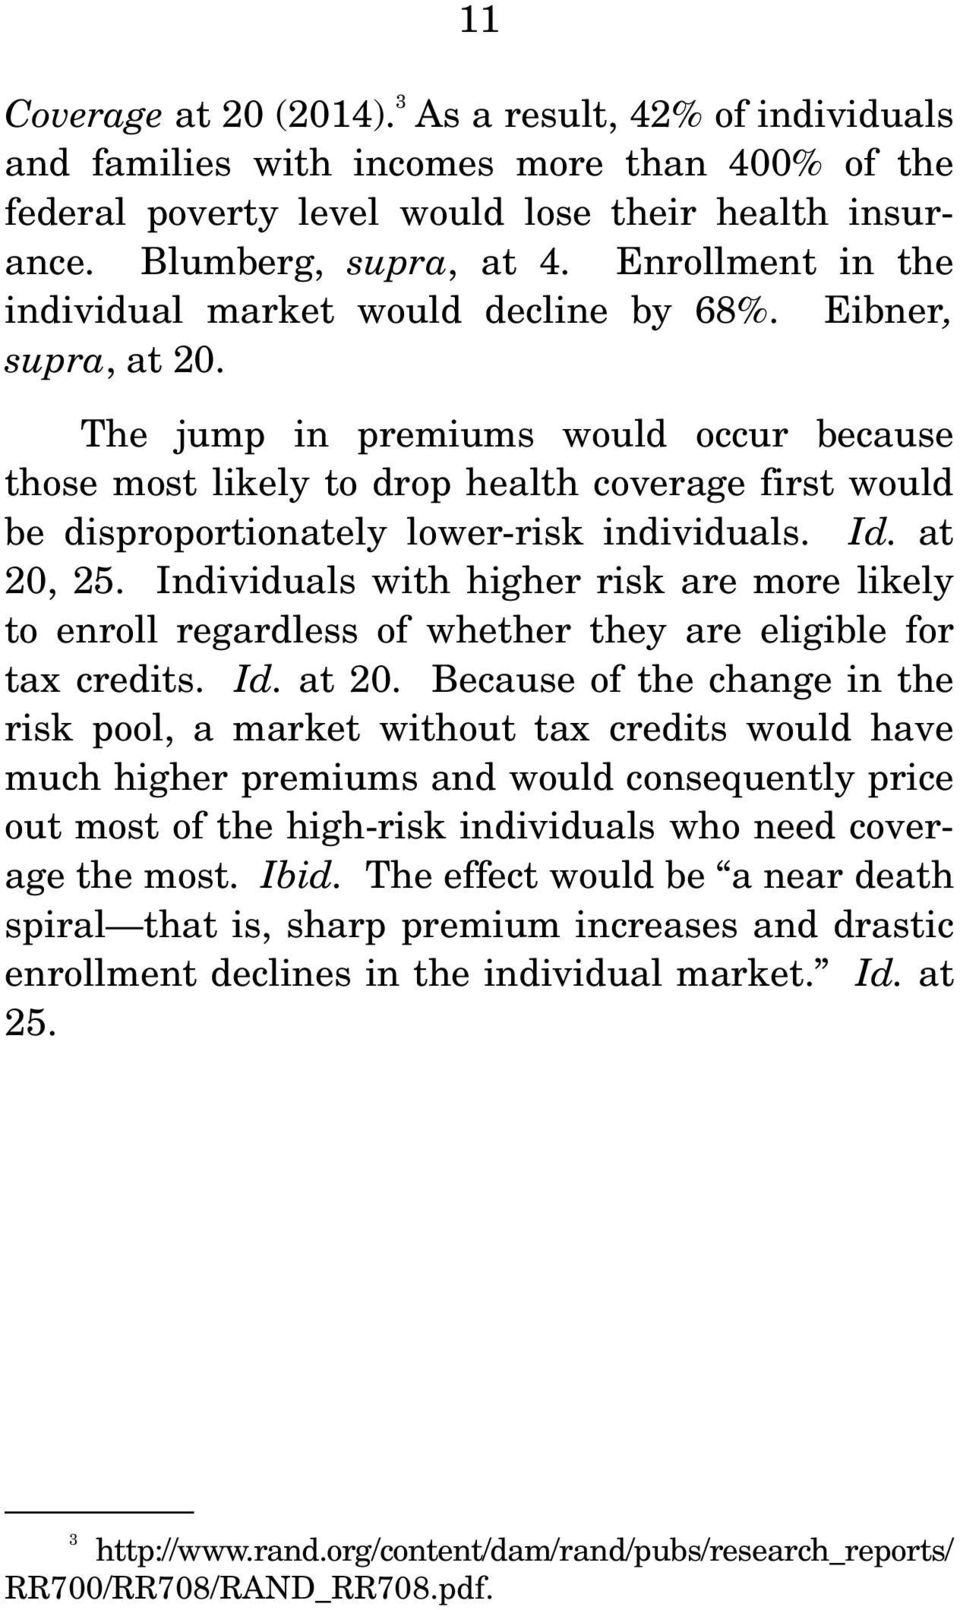 The jump in premiums would occur because those most likely to drop health coverage first would be disproportionately lower-risk individuals. Id. at 20, 25.